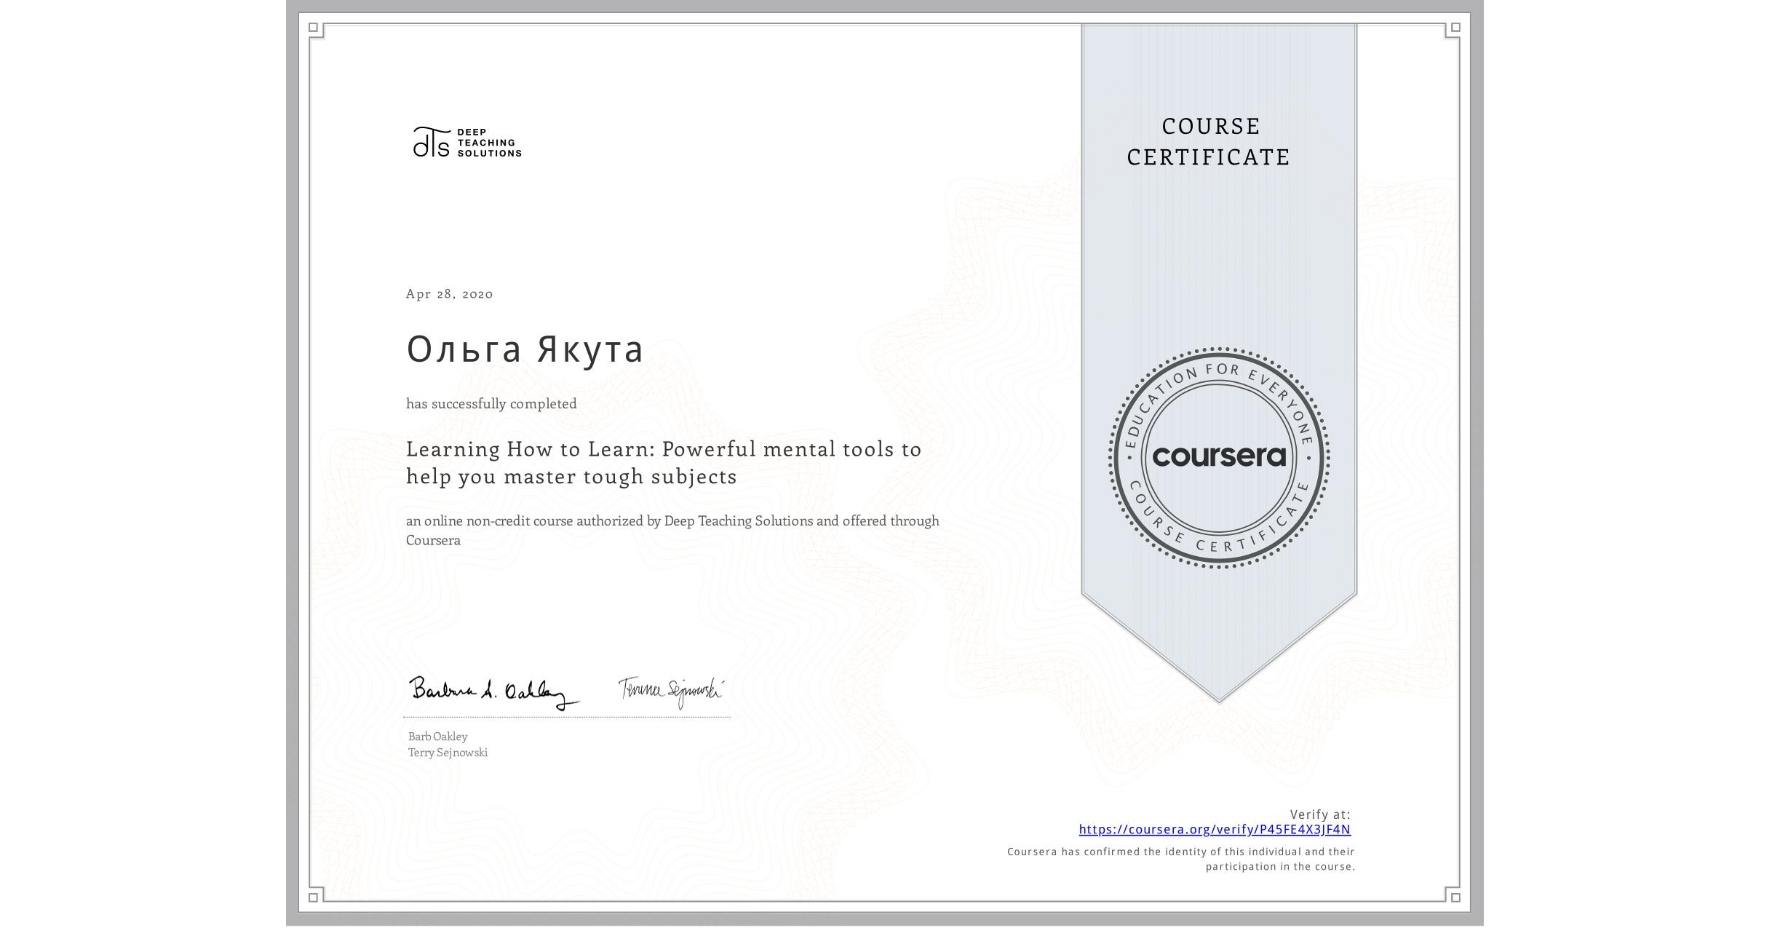 View certificate for Ольга Якута, Learning How to Learn: Powerful mental tools to help you master tough subjects, an online non-credit course authorized by Deep Teaching Solutions and offered through Coursera